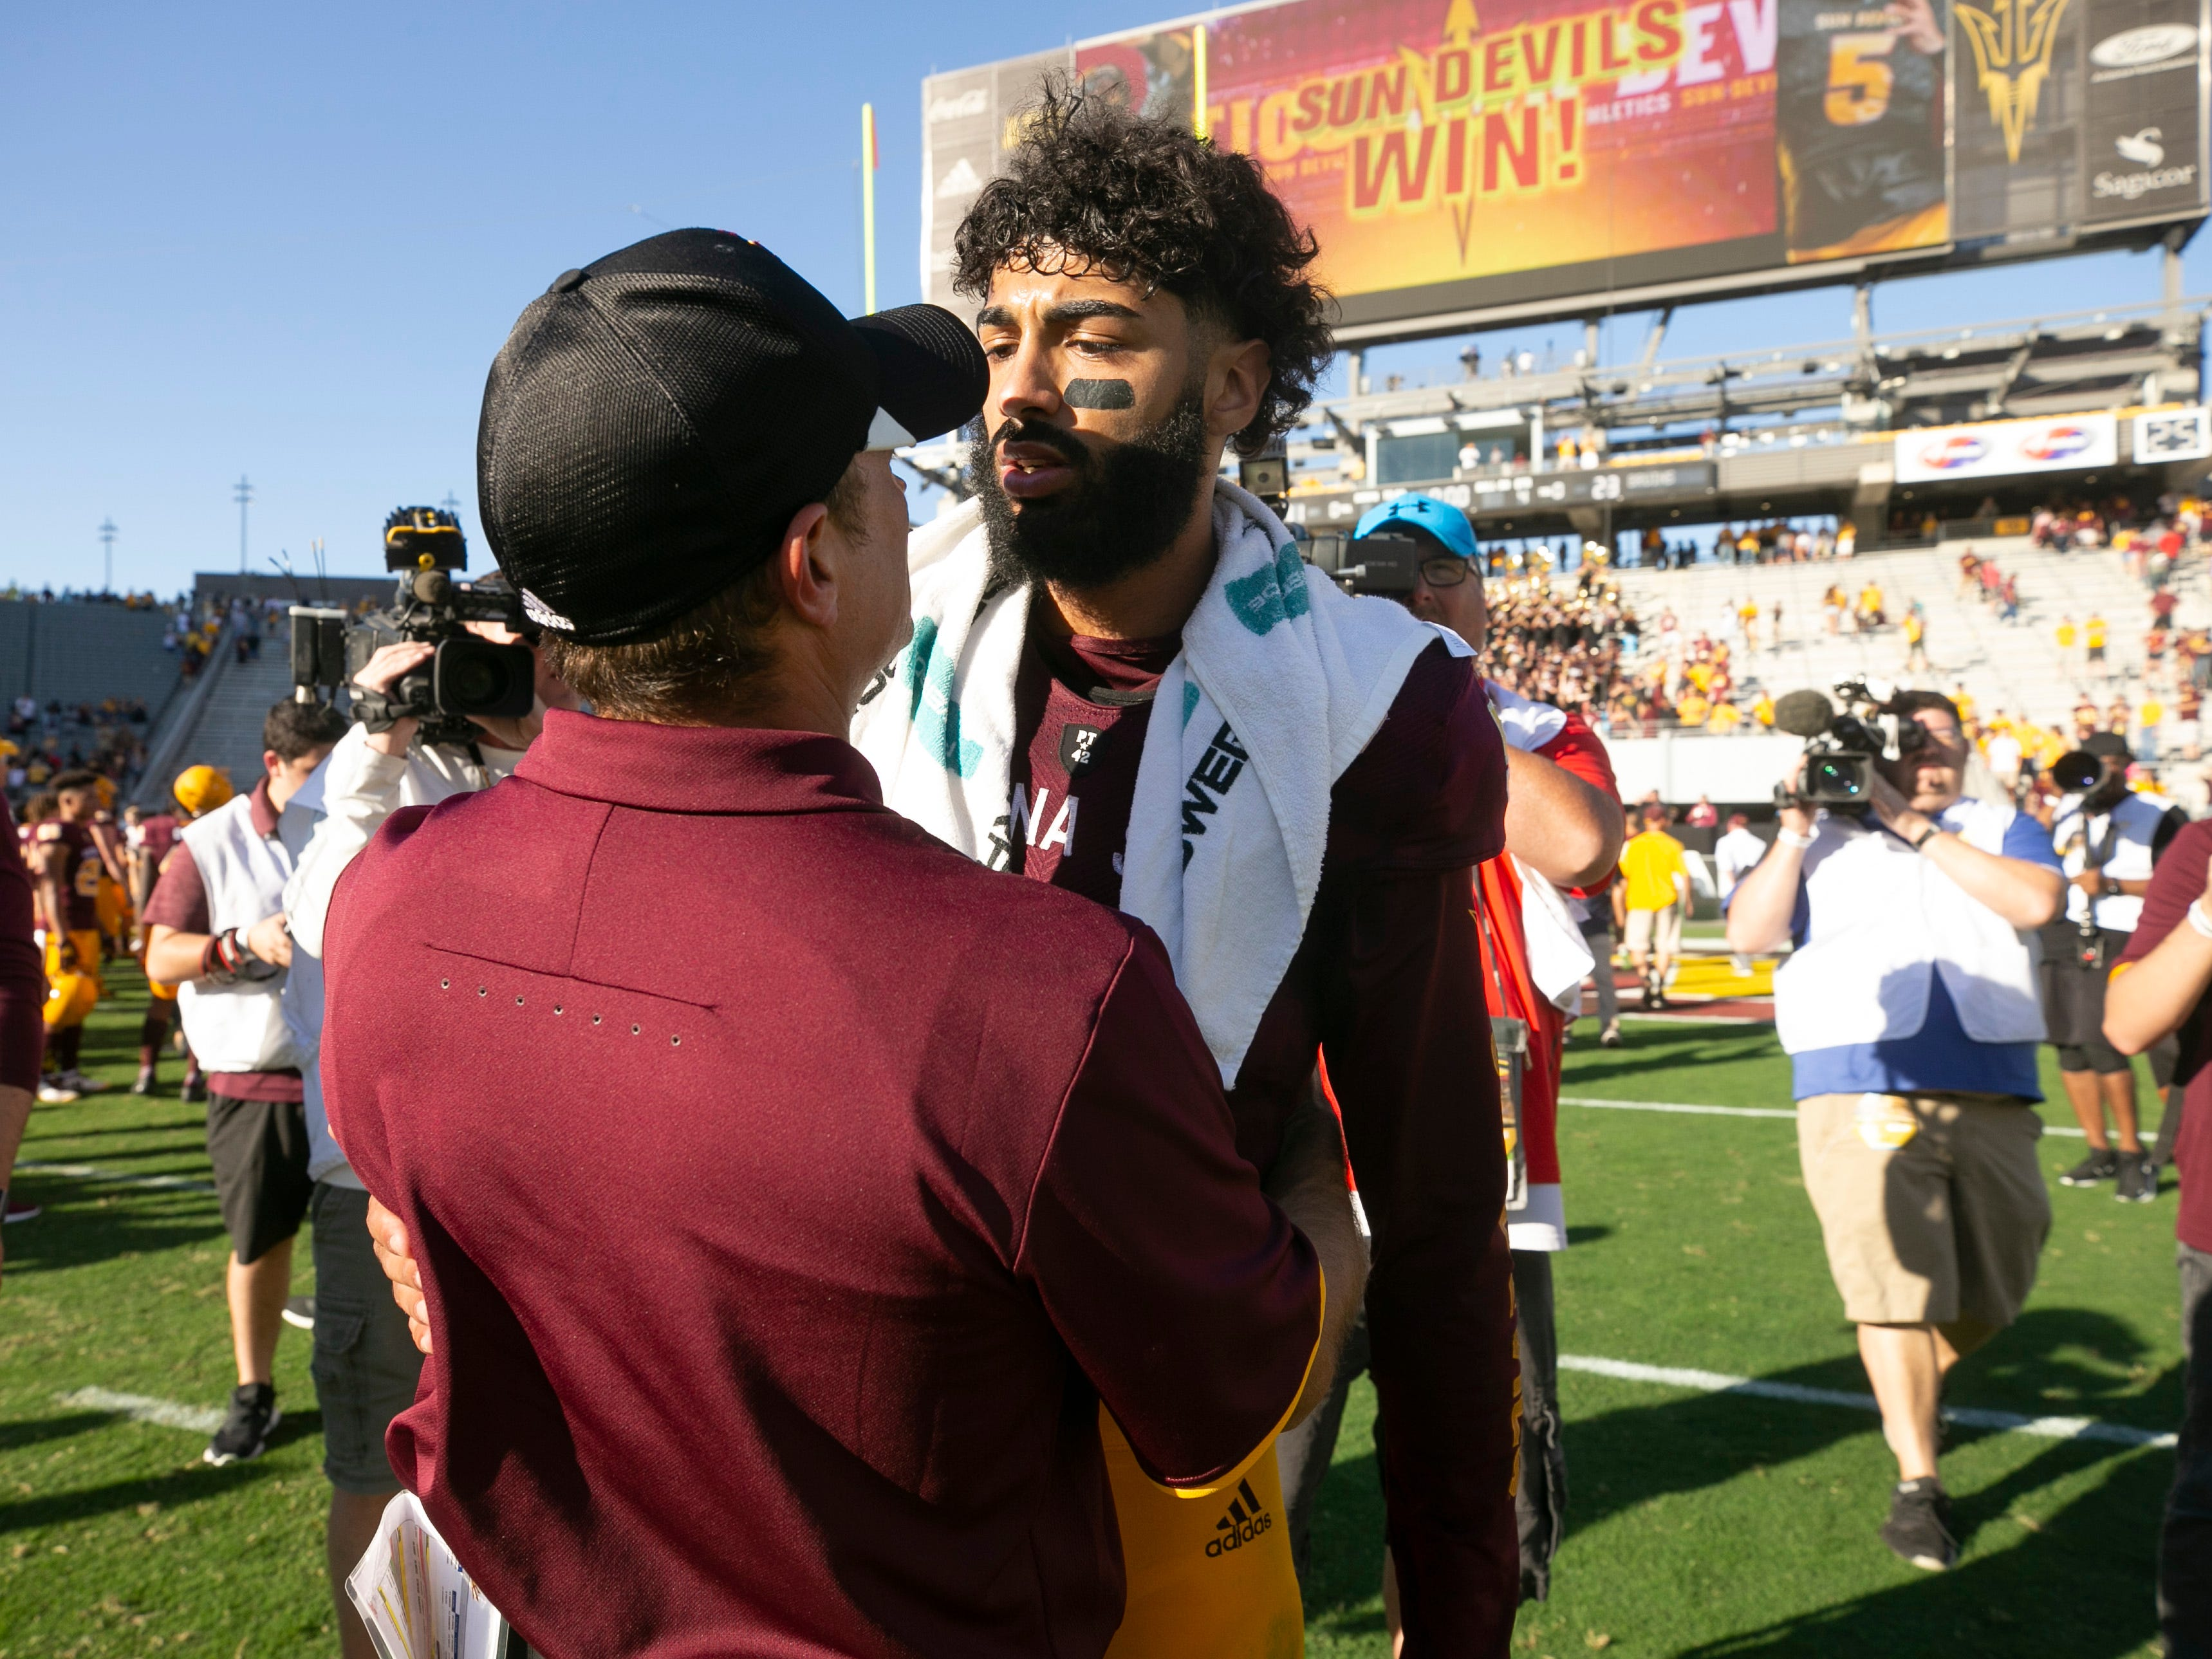 ASU quarterback Manny Wilkins after ASU's 31-28 win over UCLA in the PAC-12 college football game at Sun Devil Stadium in Tempe on Saturday, November 10, 2018. This is the last game at Sun Devil Stadium for Wilkins.